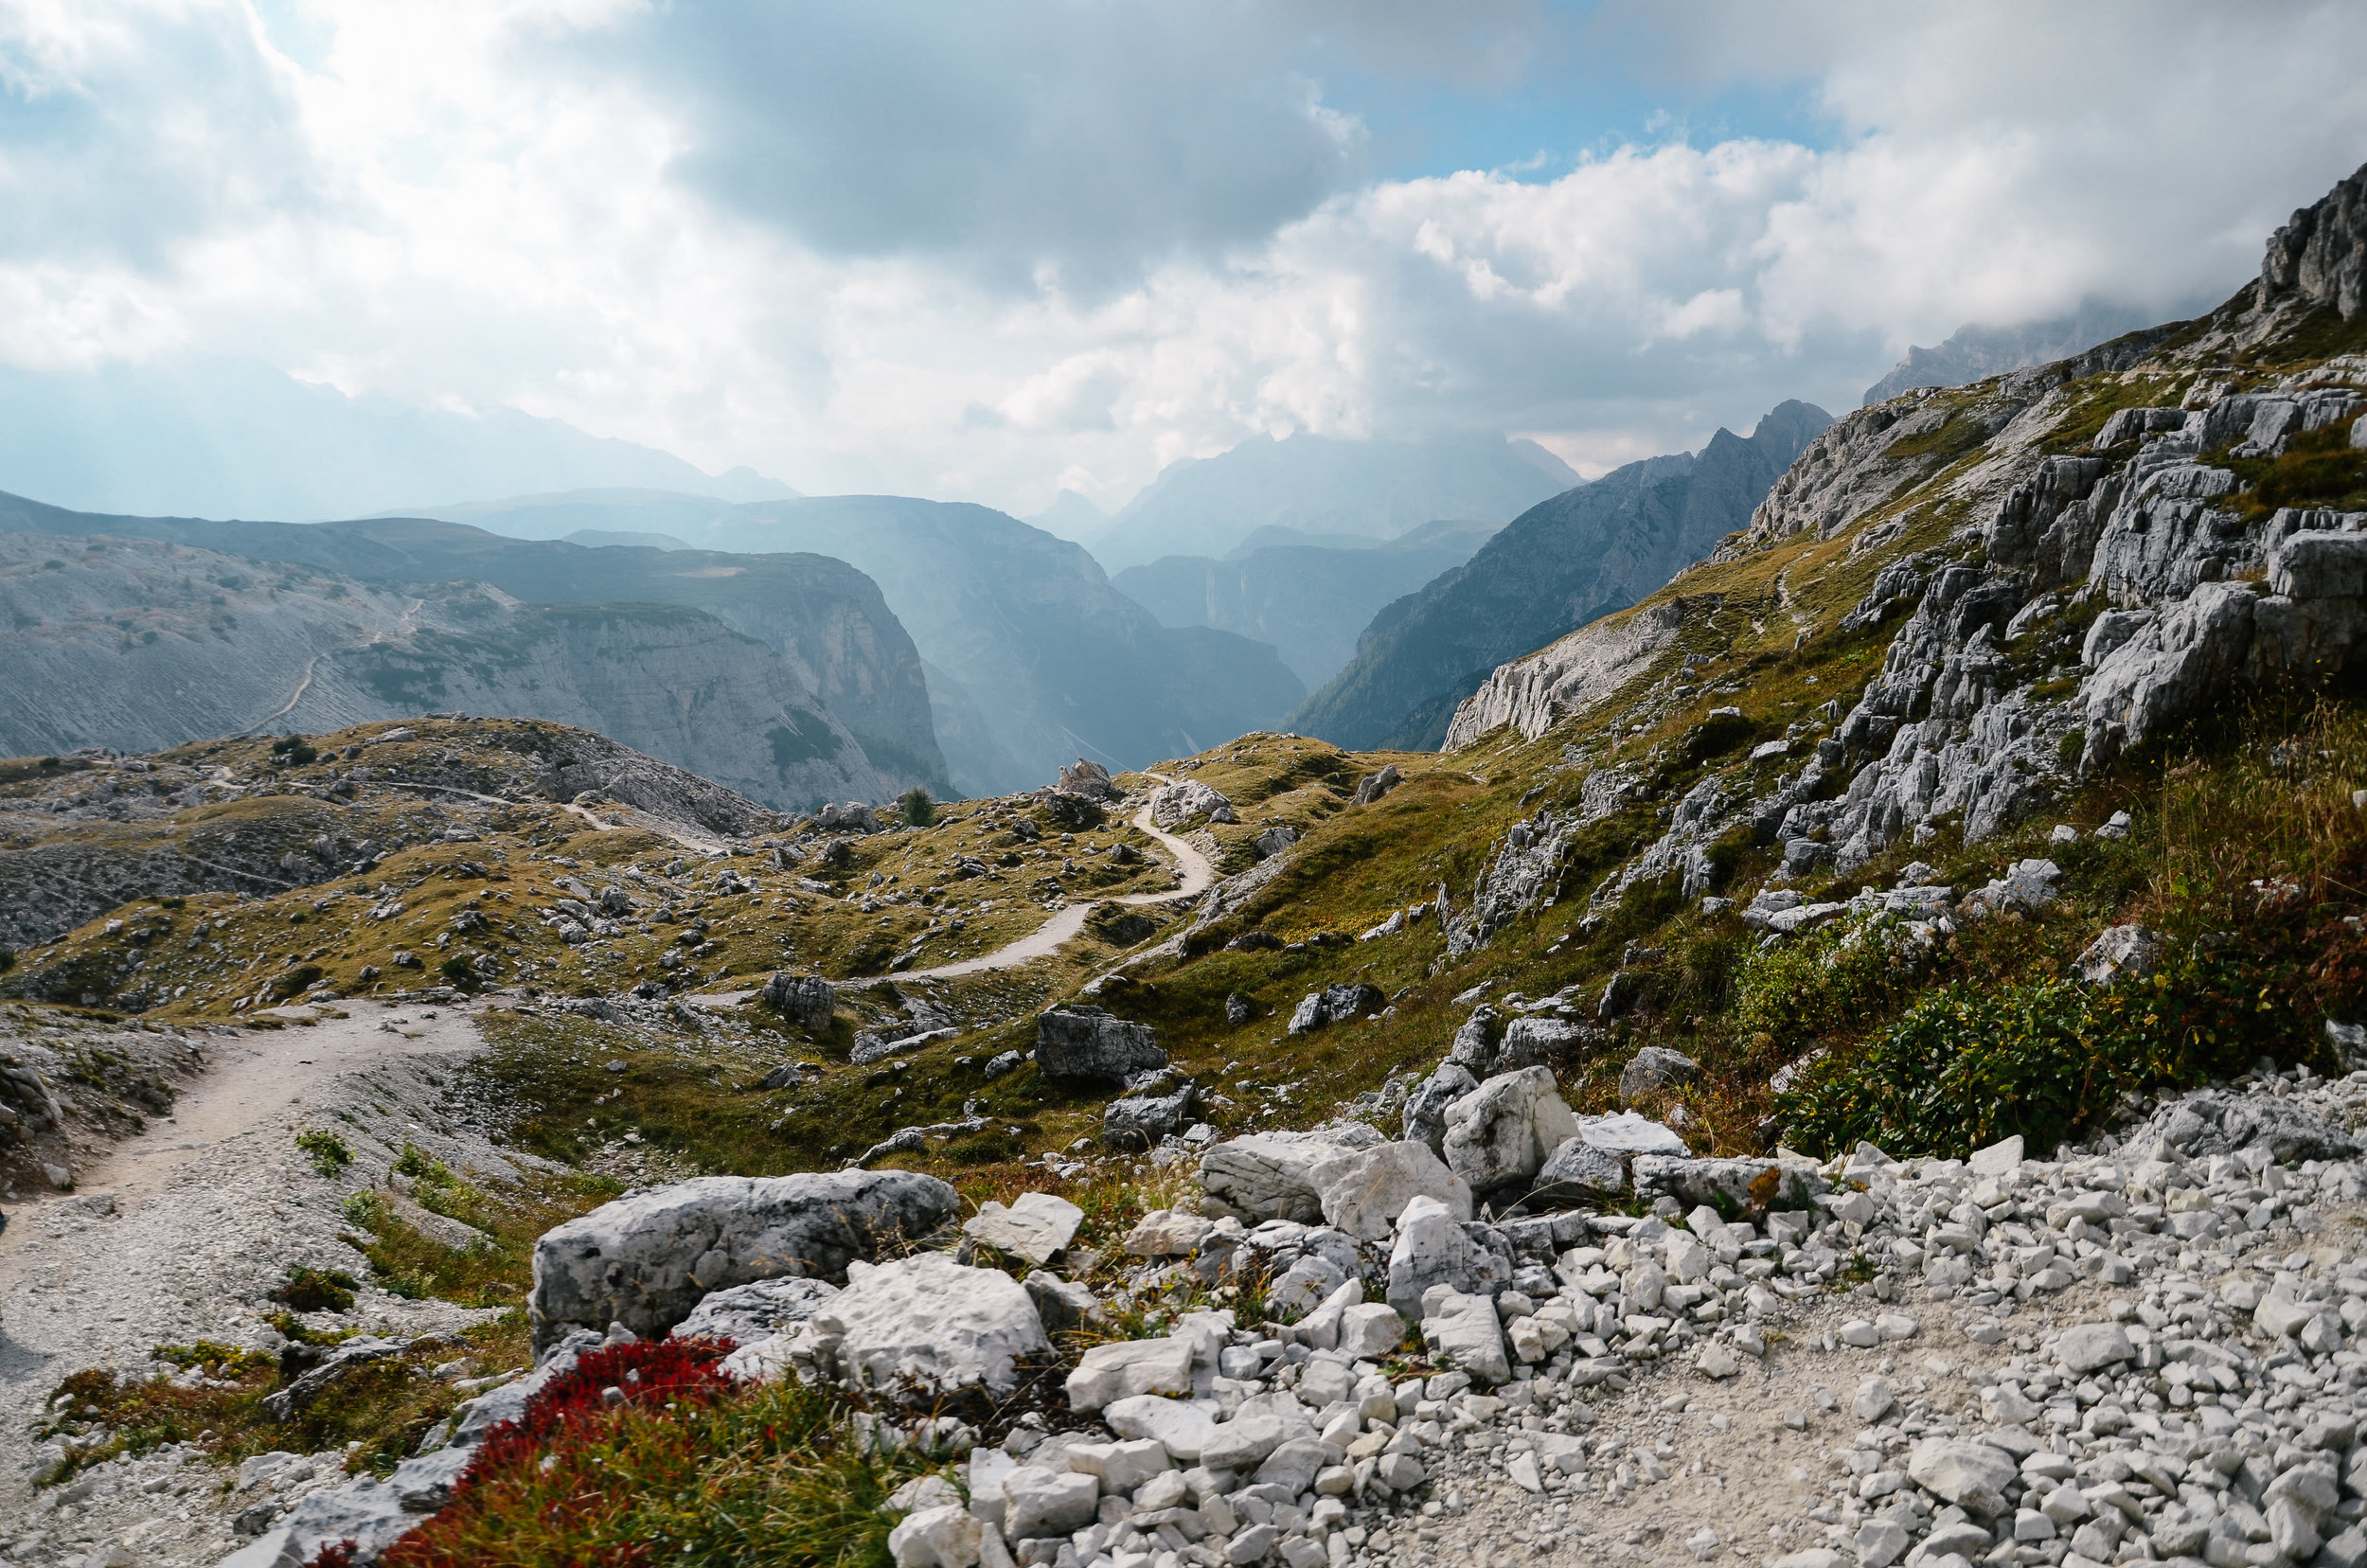 dolomites-why-the-italian-alps-should-be-your-next-mountain-adventure- travel-blog-14.jpg